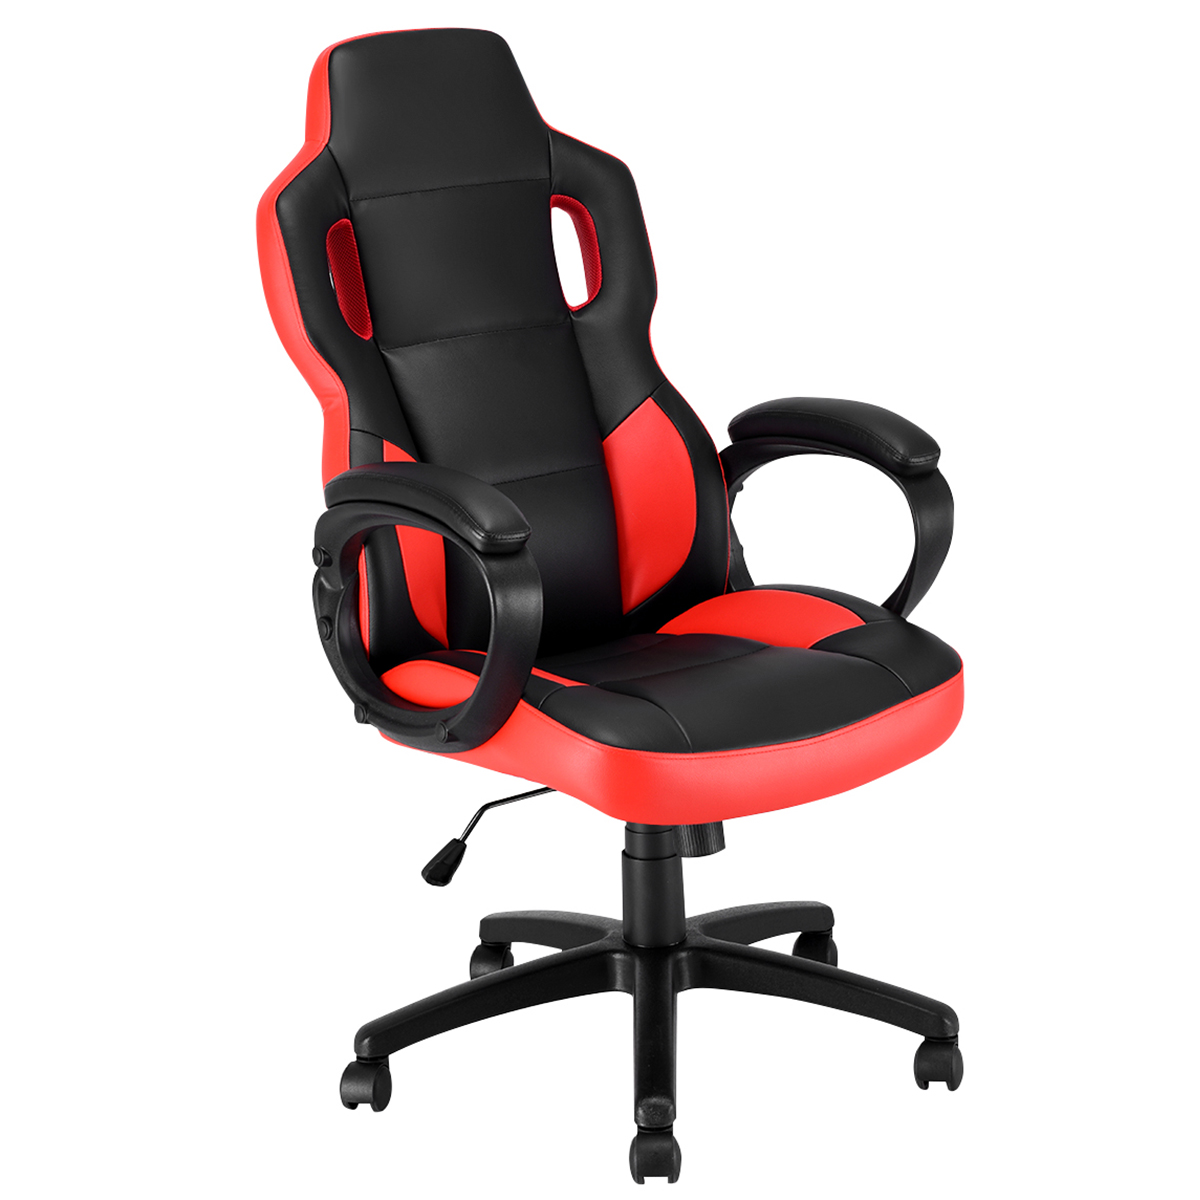 Costway Gaming Chair Executive Office Chair Racing Style Swivel Desk Task Computer Chair